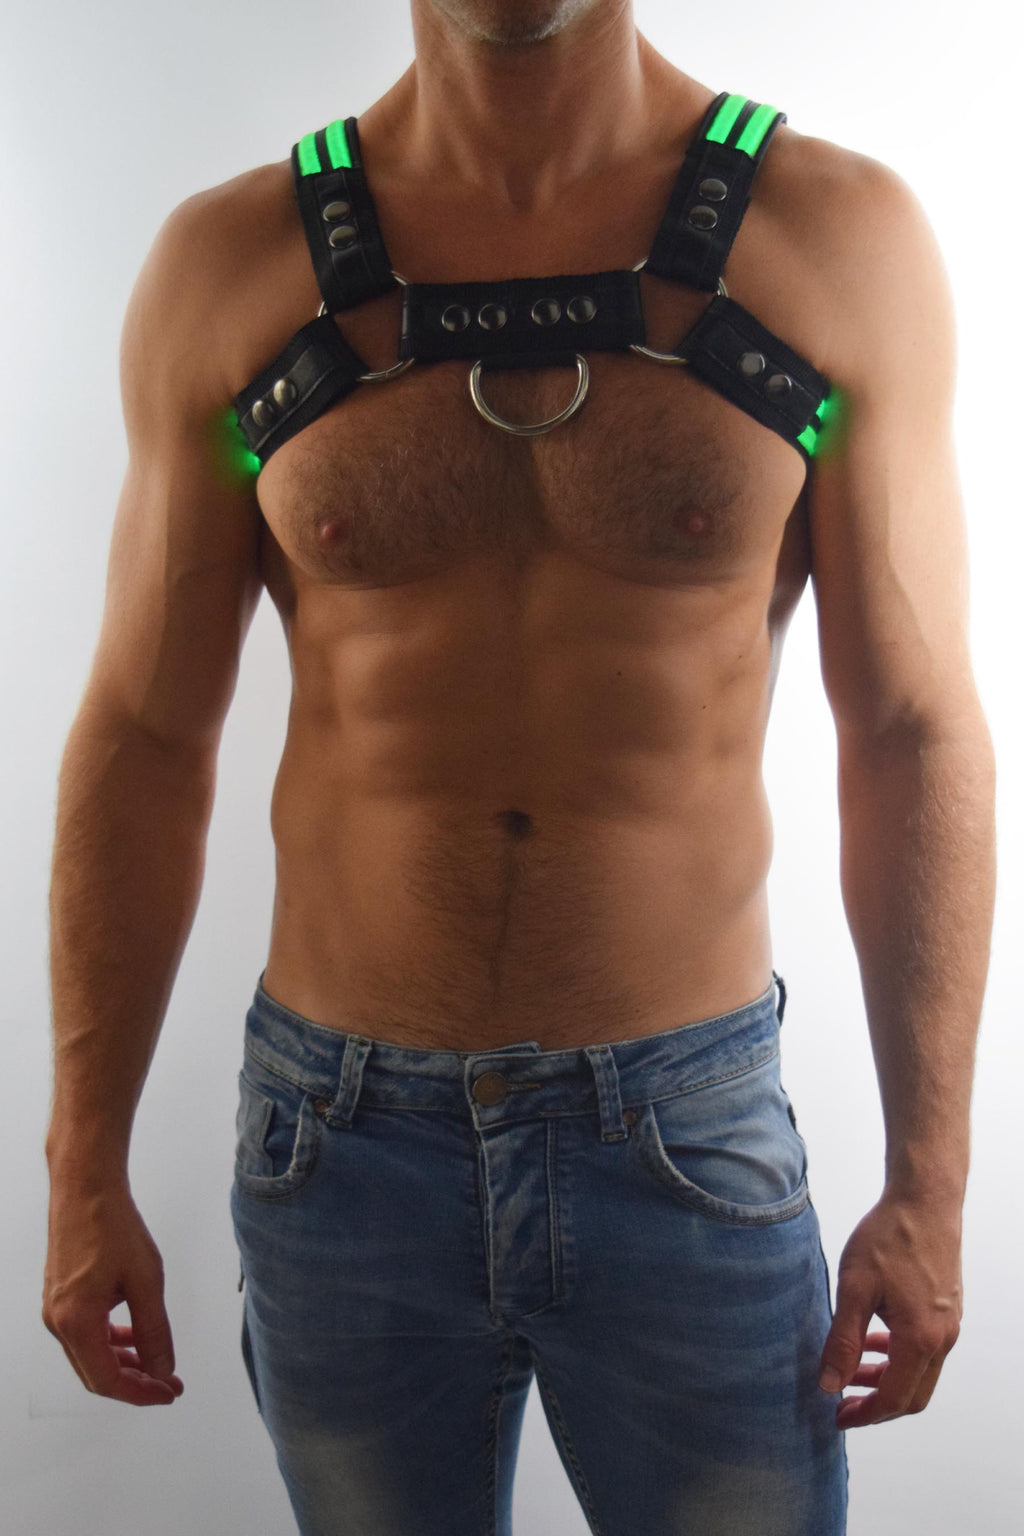 GREEN GLOW BULLDOG HARNESS